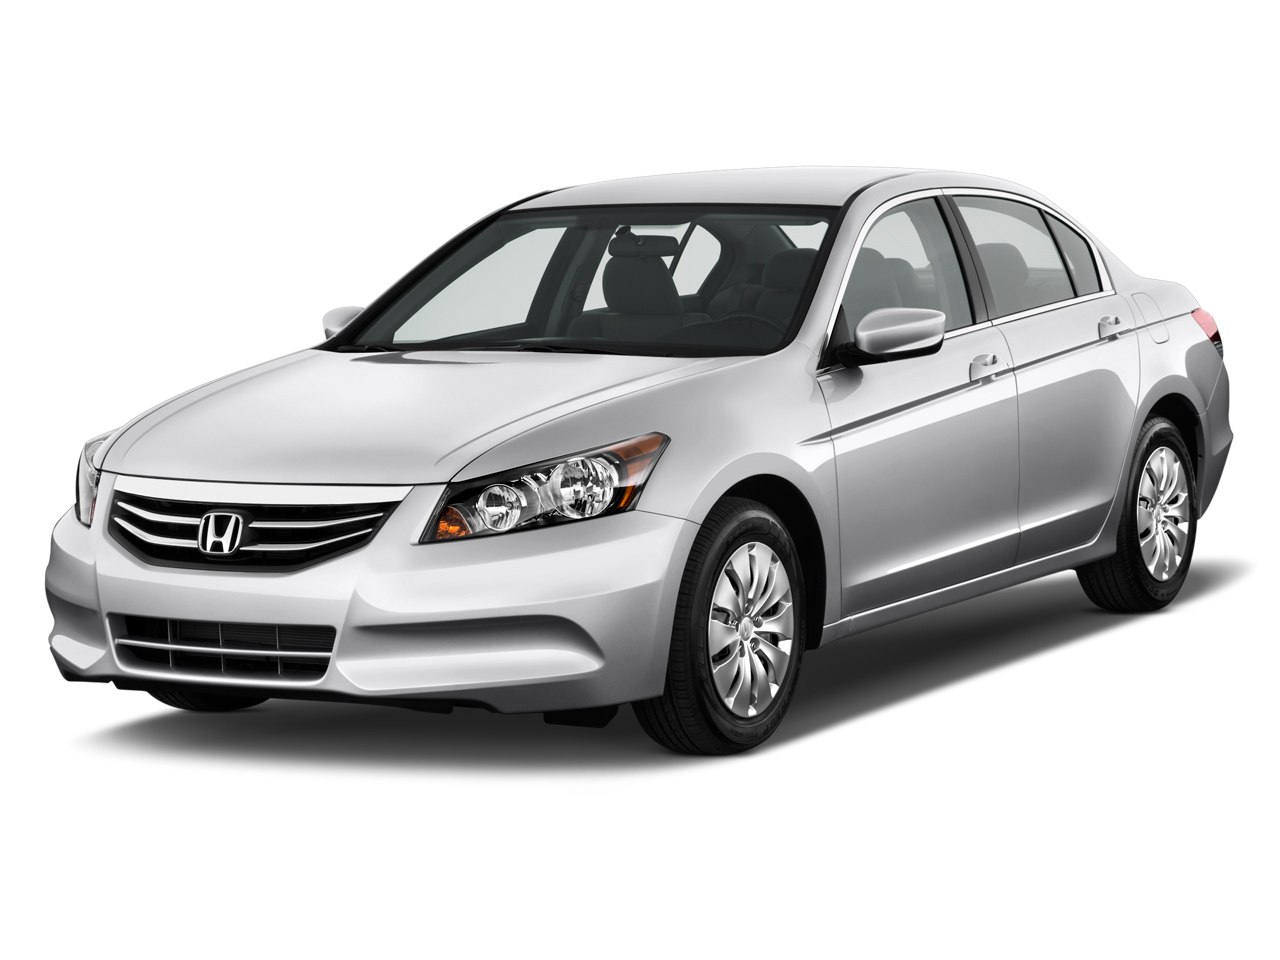 2011 honda accord sedan review ratings specs prices and photos the car connection. Black Bedroom Furniture Sets. Home Design Ideas